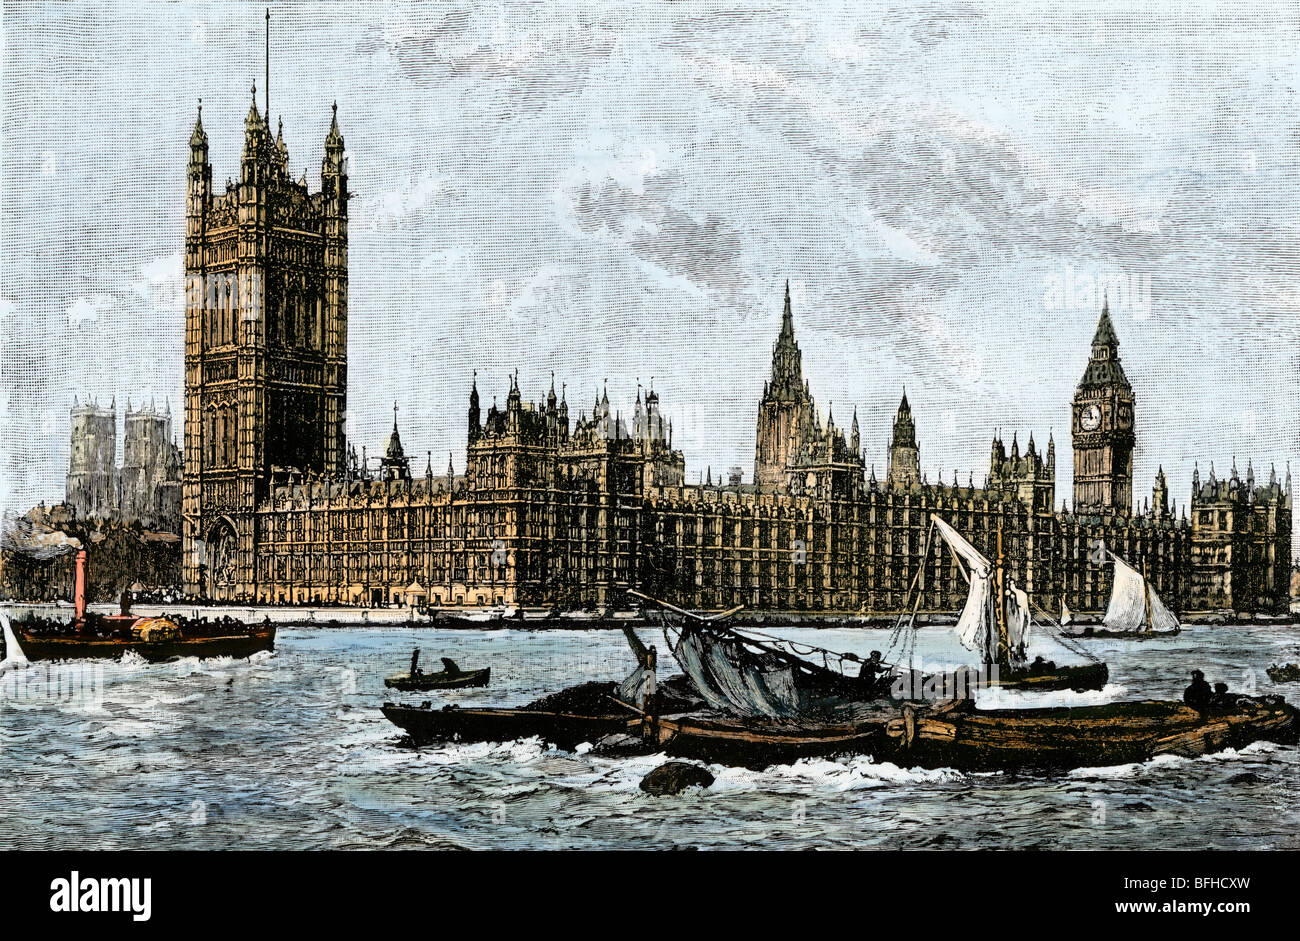 Westminster and the Houses of Parliament from the Thames, 1800s. Hand-colored woodcut - Stock Image